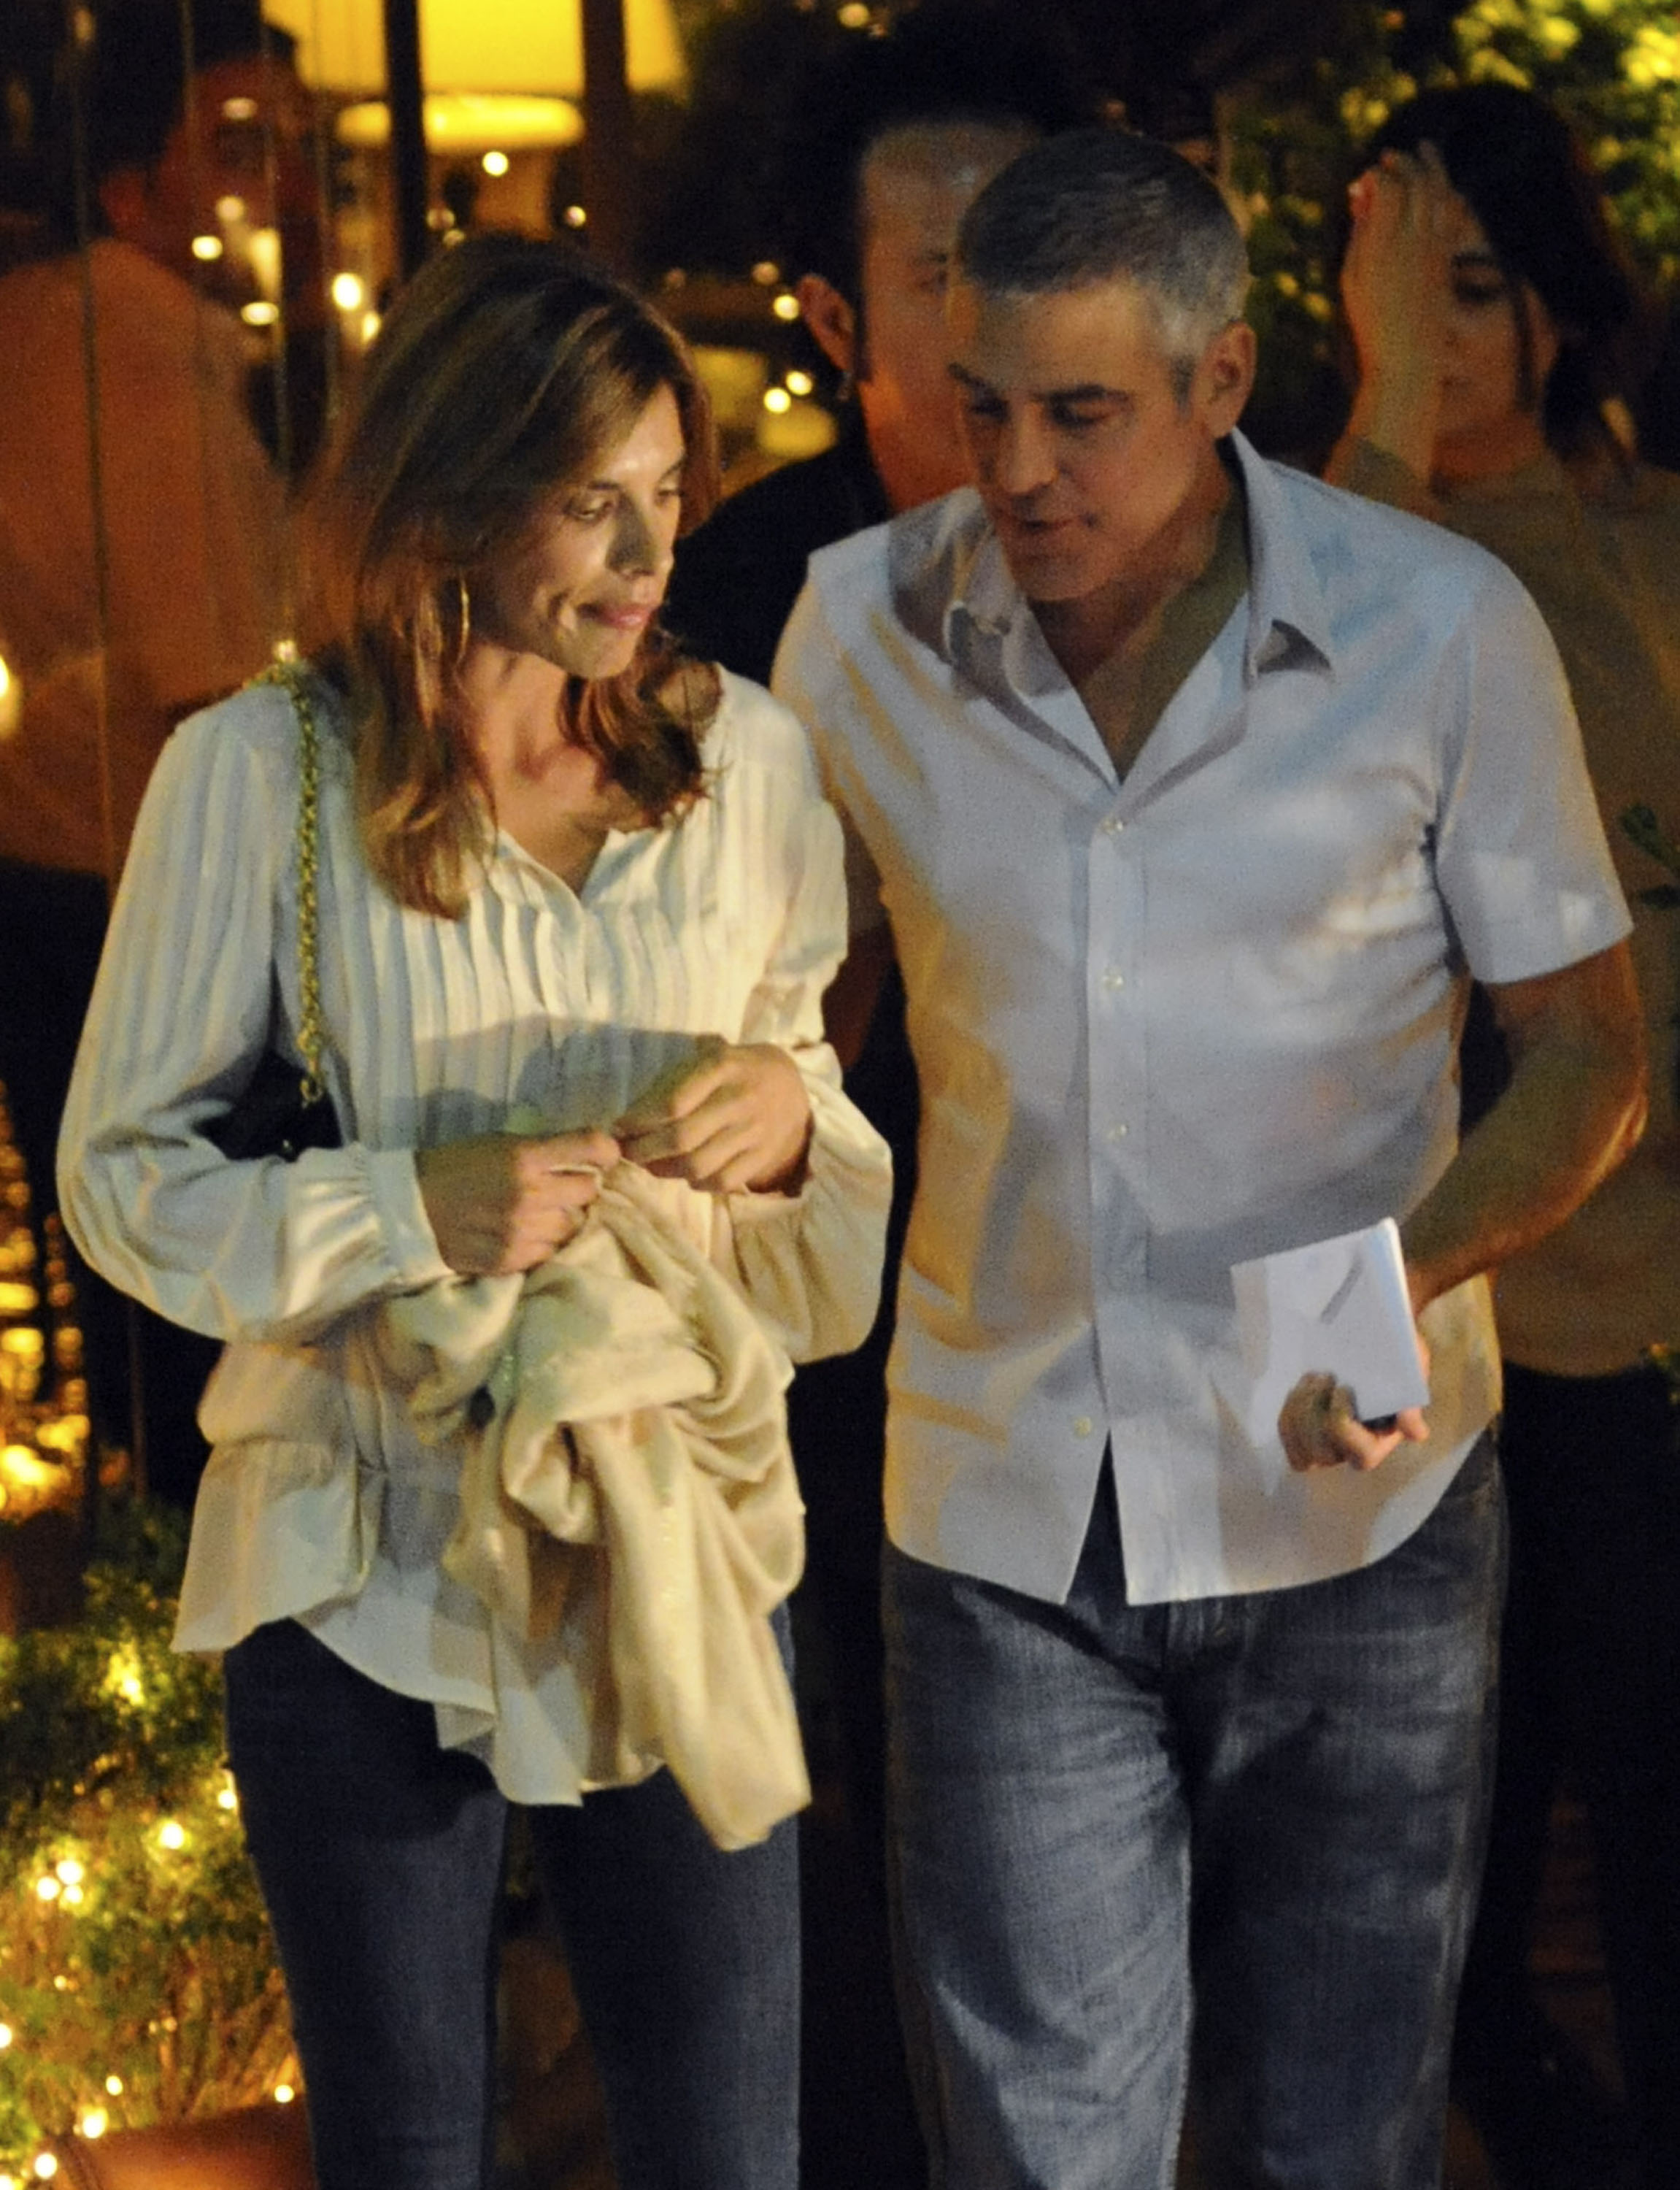 George Clooney and Elisabetta Canalis Have a Candle-Lit Italian Date Night